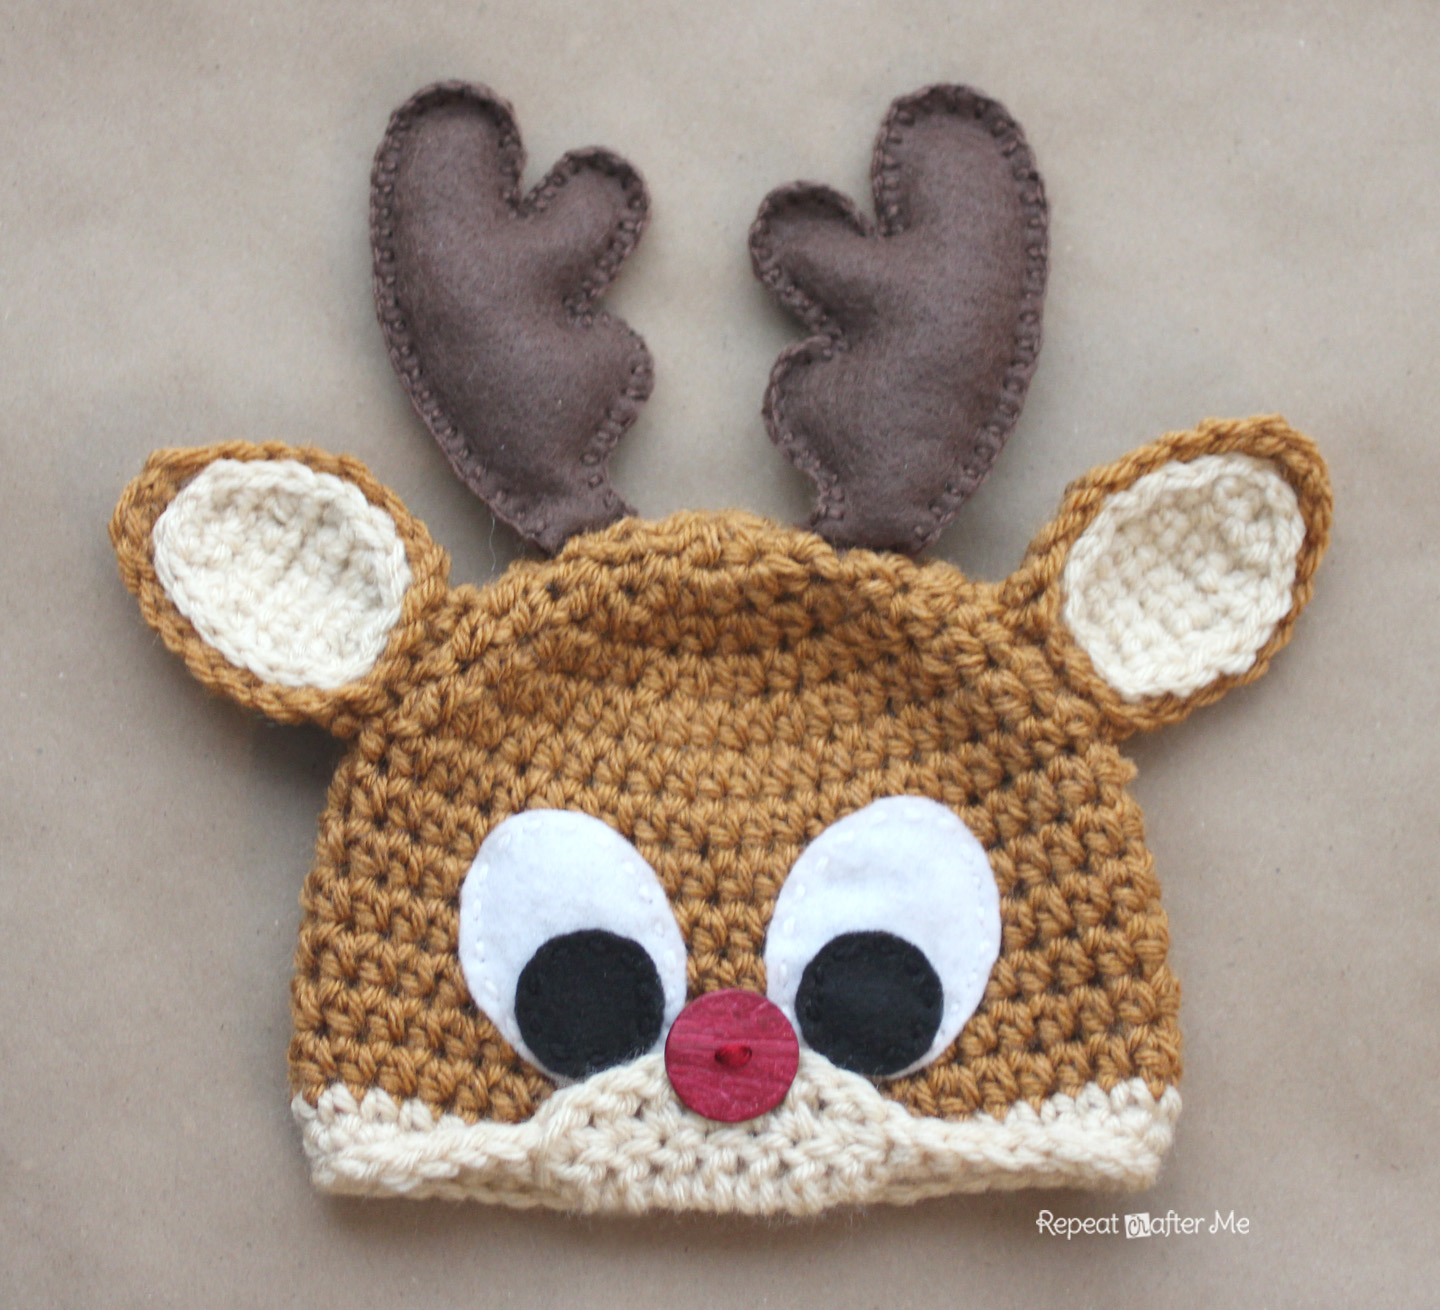 Crochet Rudolph the Reindeer Hat Pattern - Repeat Crafter Me e38e325c5e2